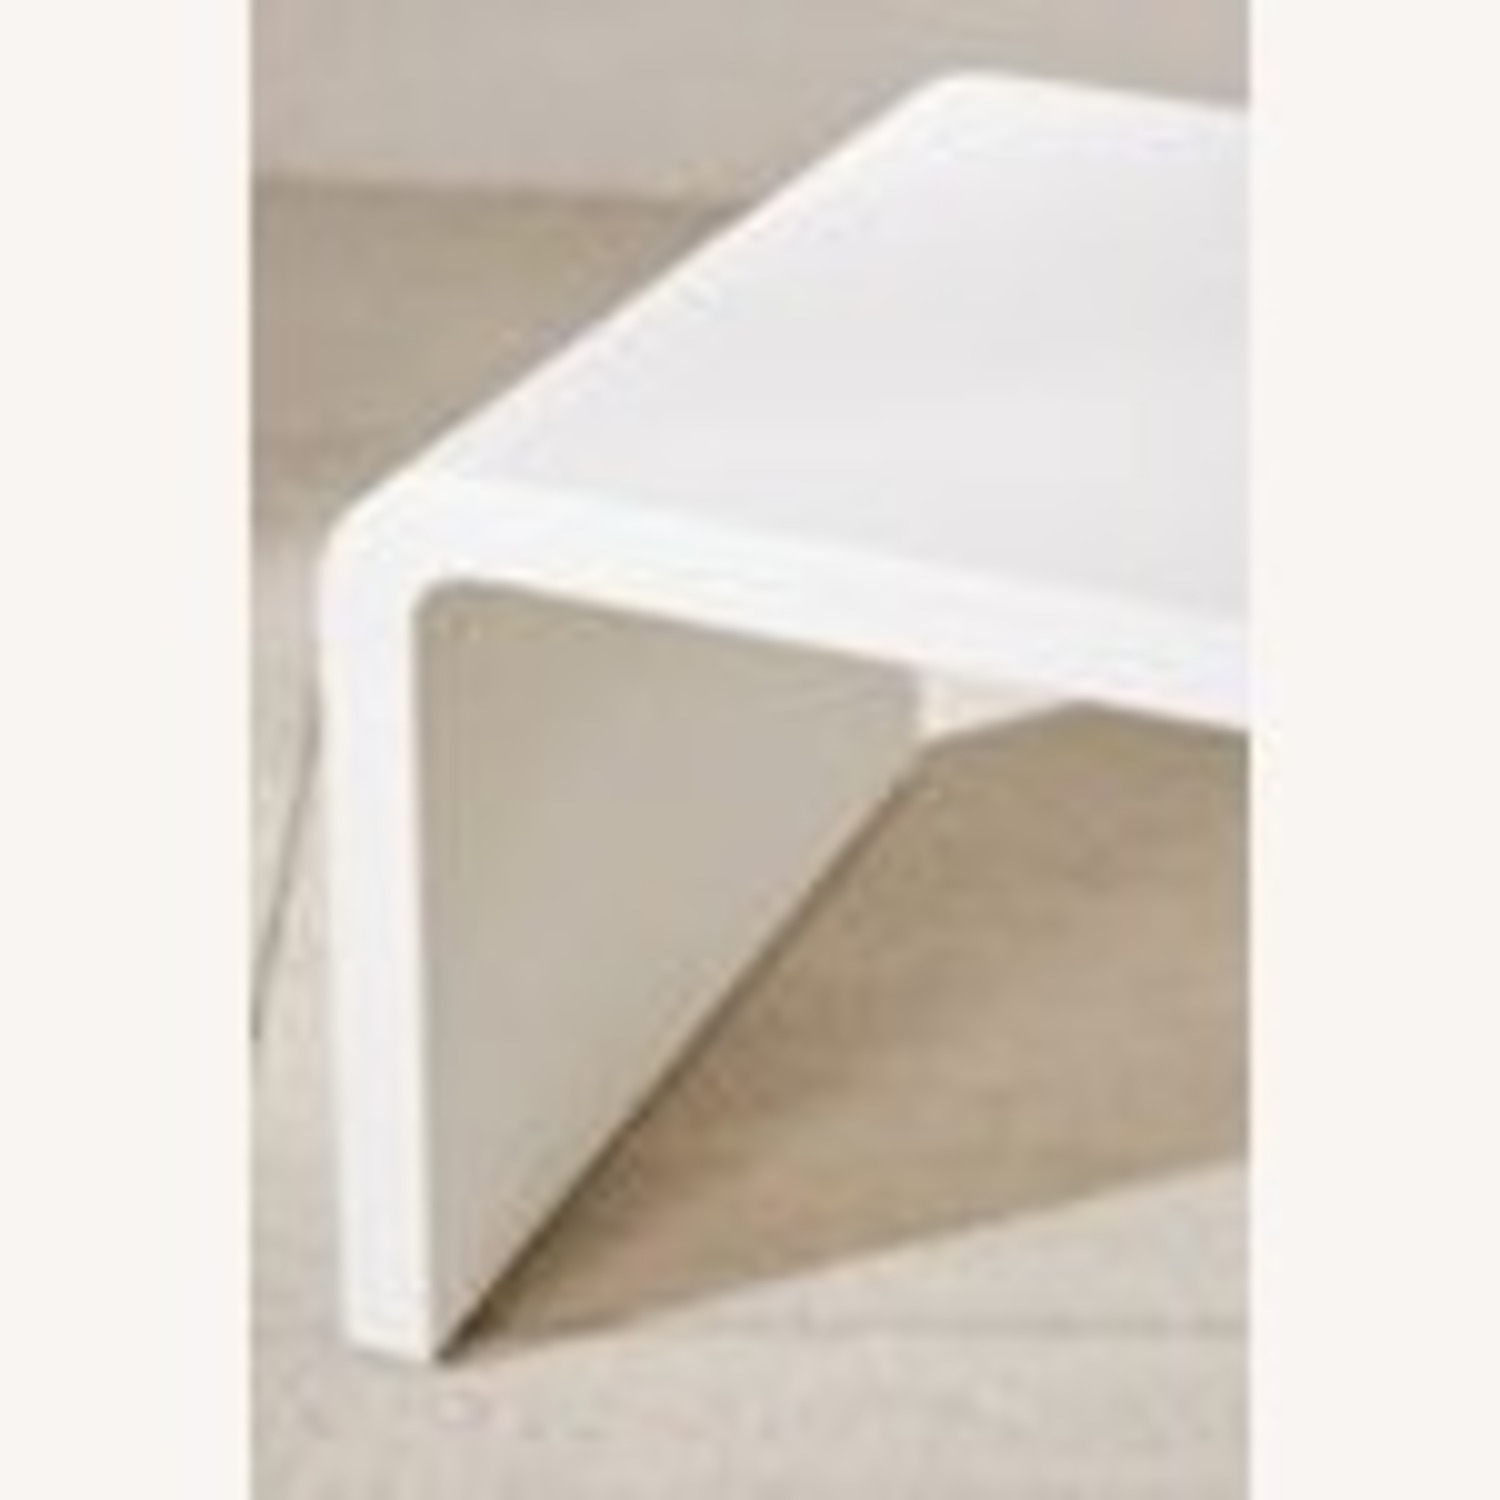 Urban Outfitters Hamilton Curved Coffee Table - image-2